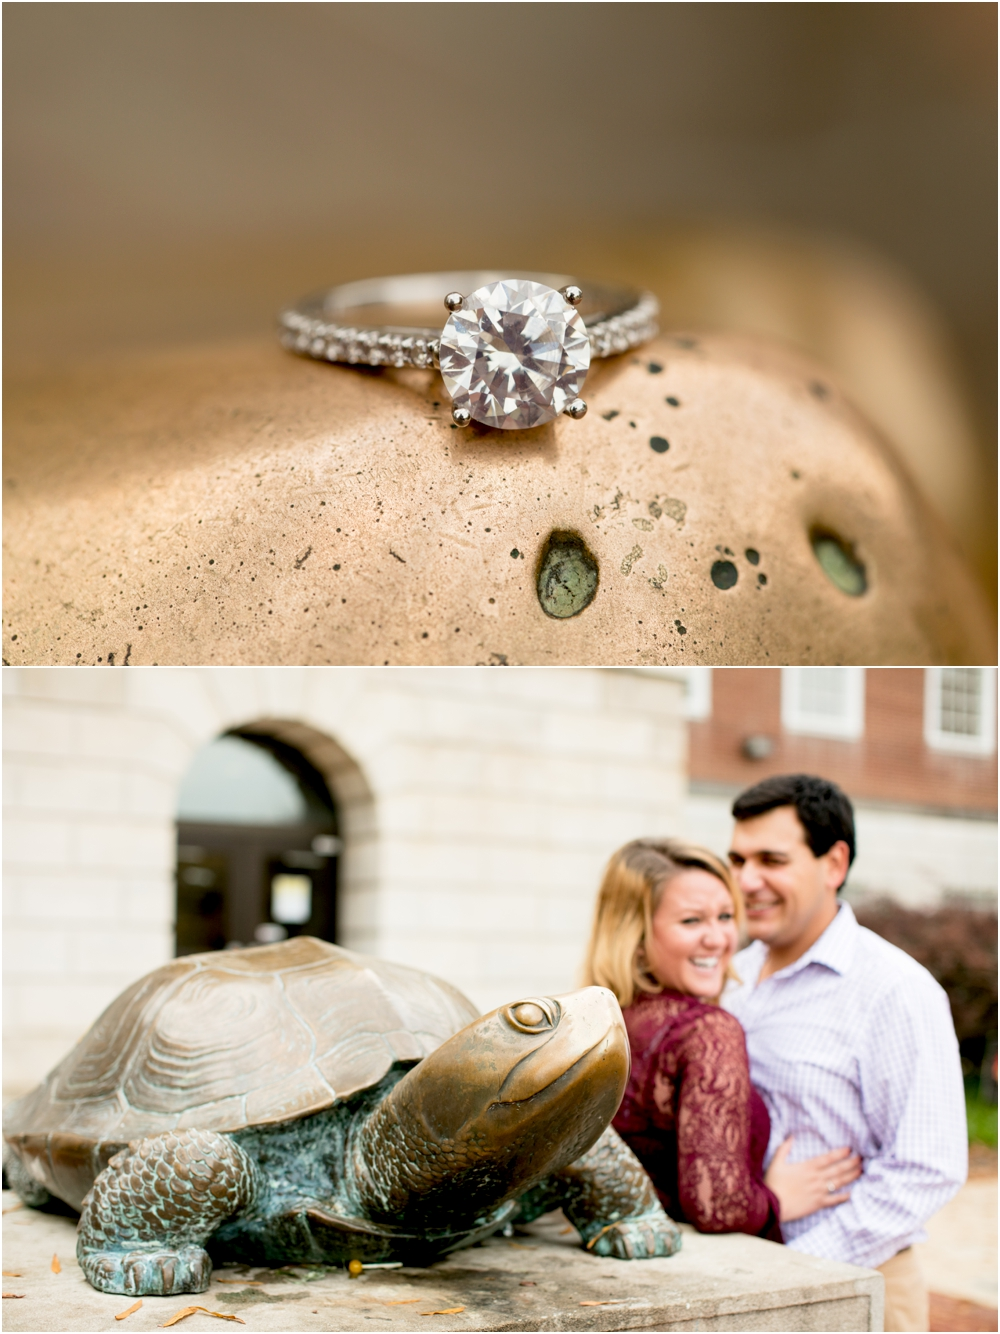 torie chris university of maryland engagement session living radiant photography_0014.jpg